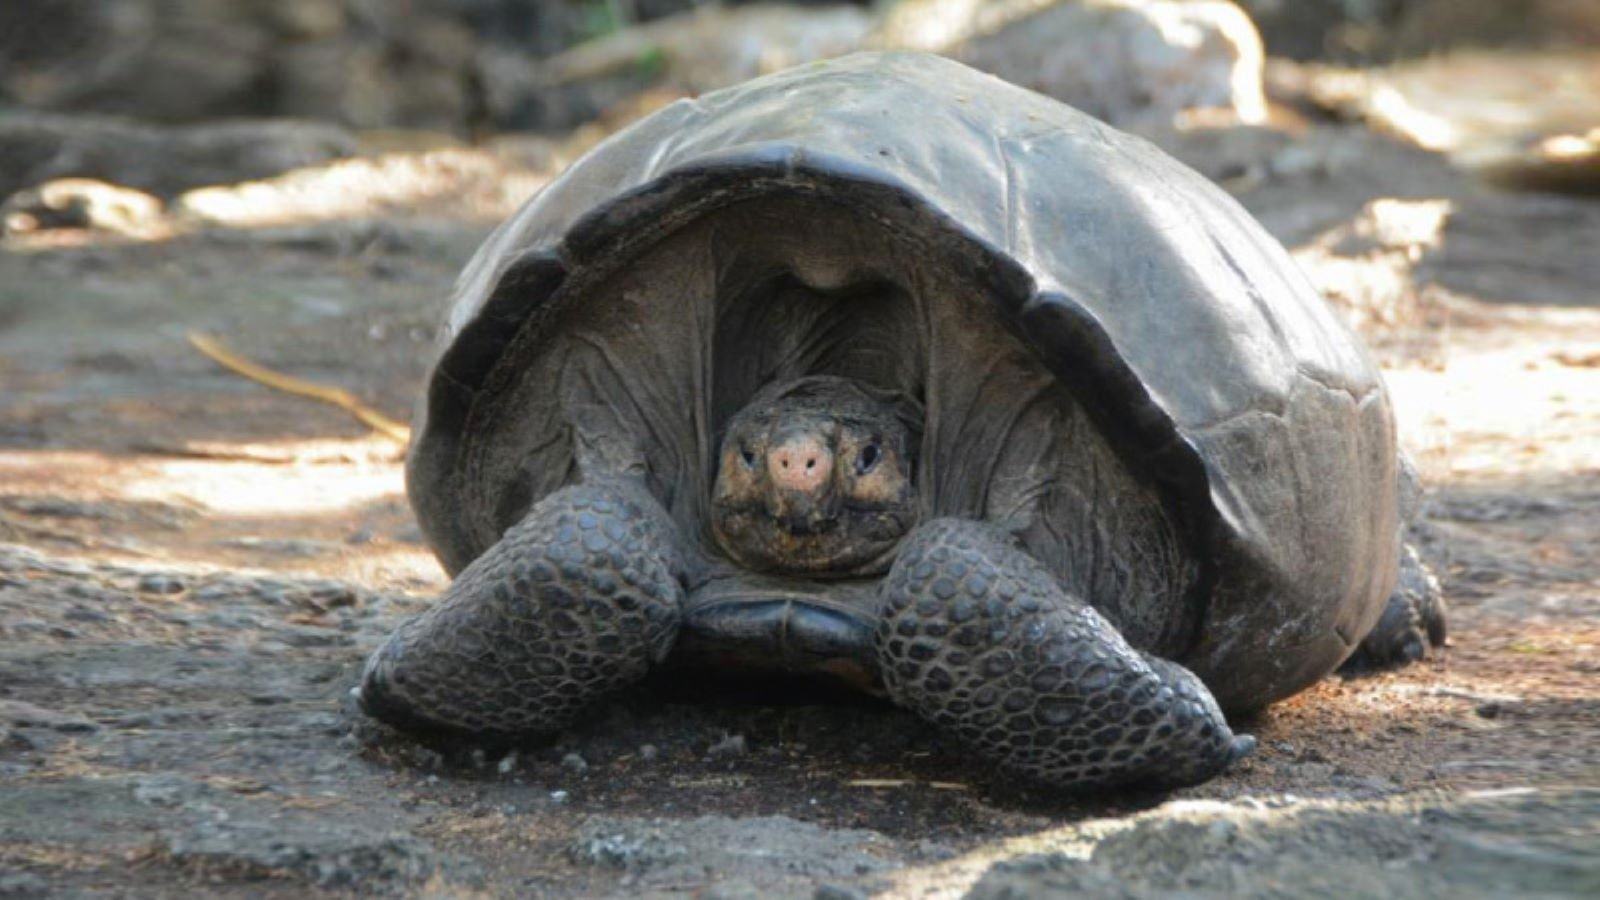 The Fernandino Giant Tortoise was thought to be extinct, but was seen earlier this week for the first time in 103 years. (Credit: Ministry of the Environment)